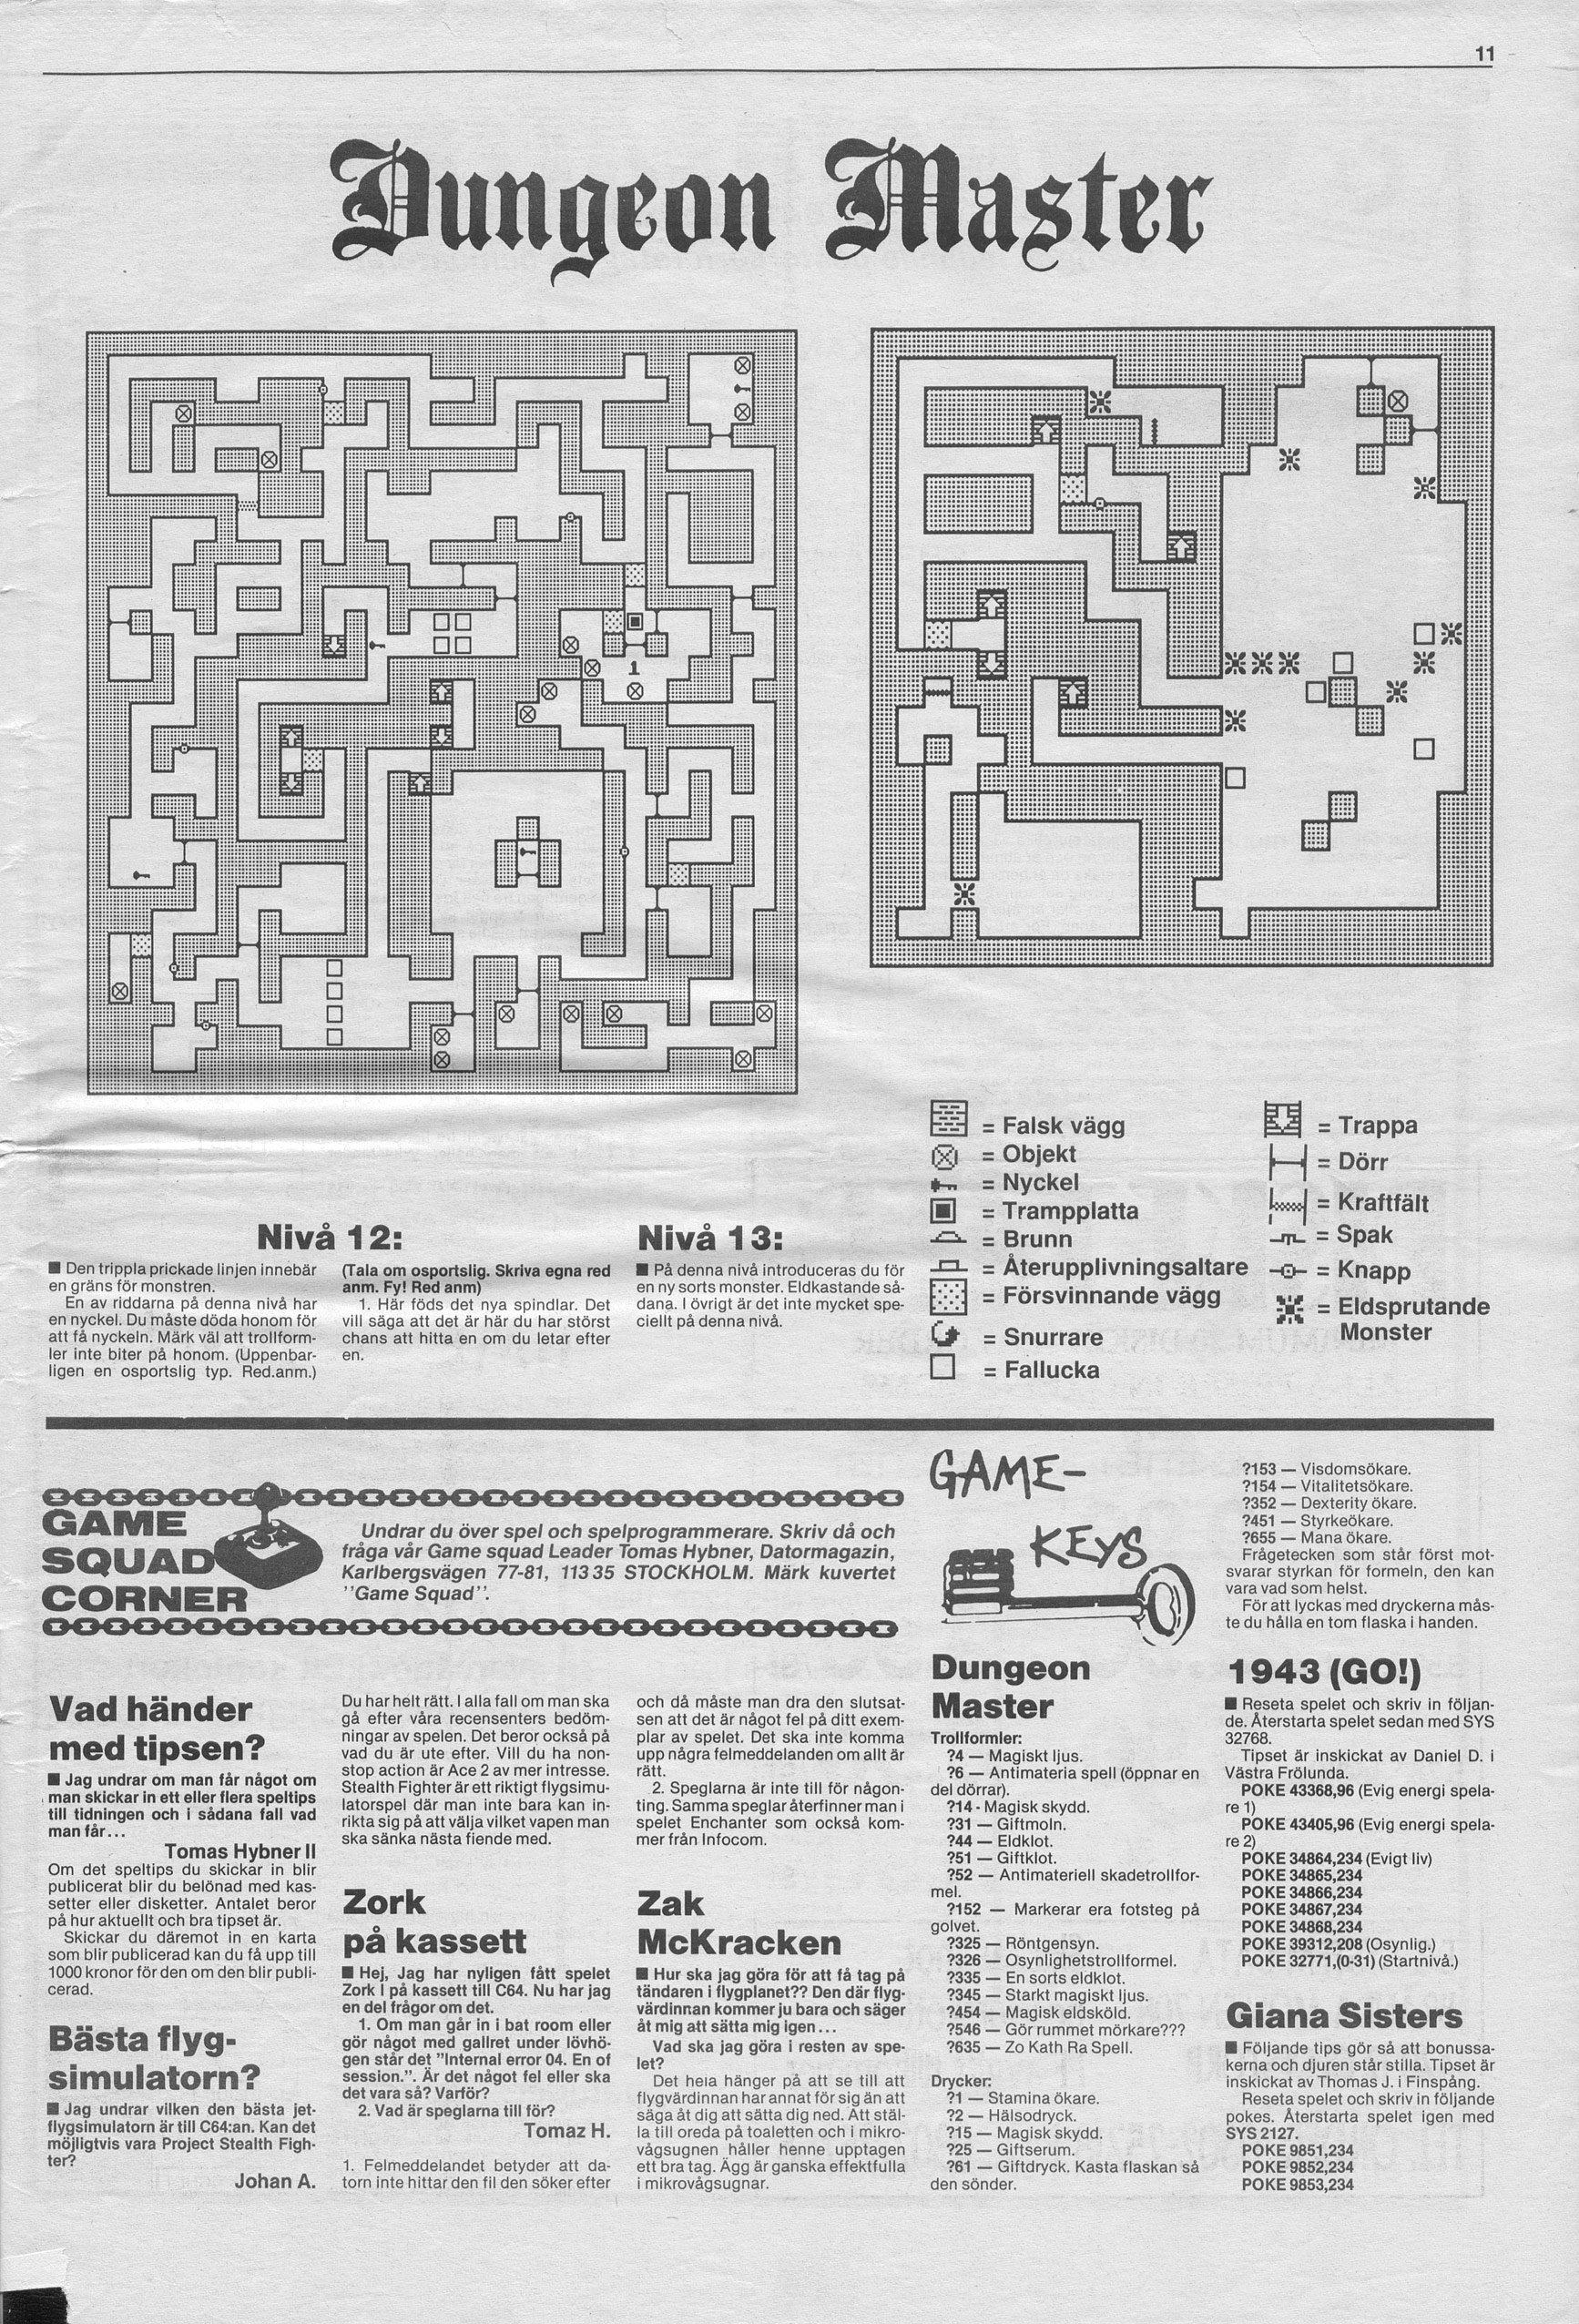 Dungeon Master Hints published in Swedish magazine 'Datormagazin', Vol. 1989 No. 11, August 1989, Page 11